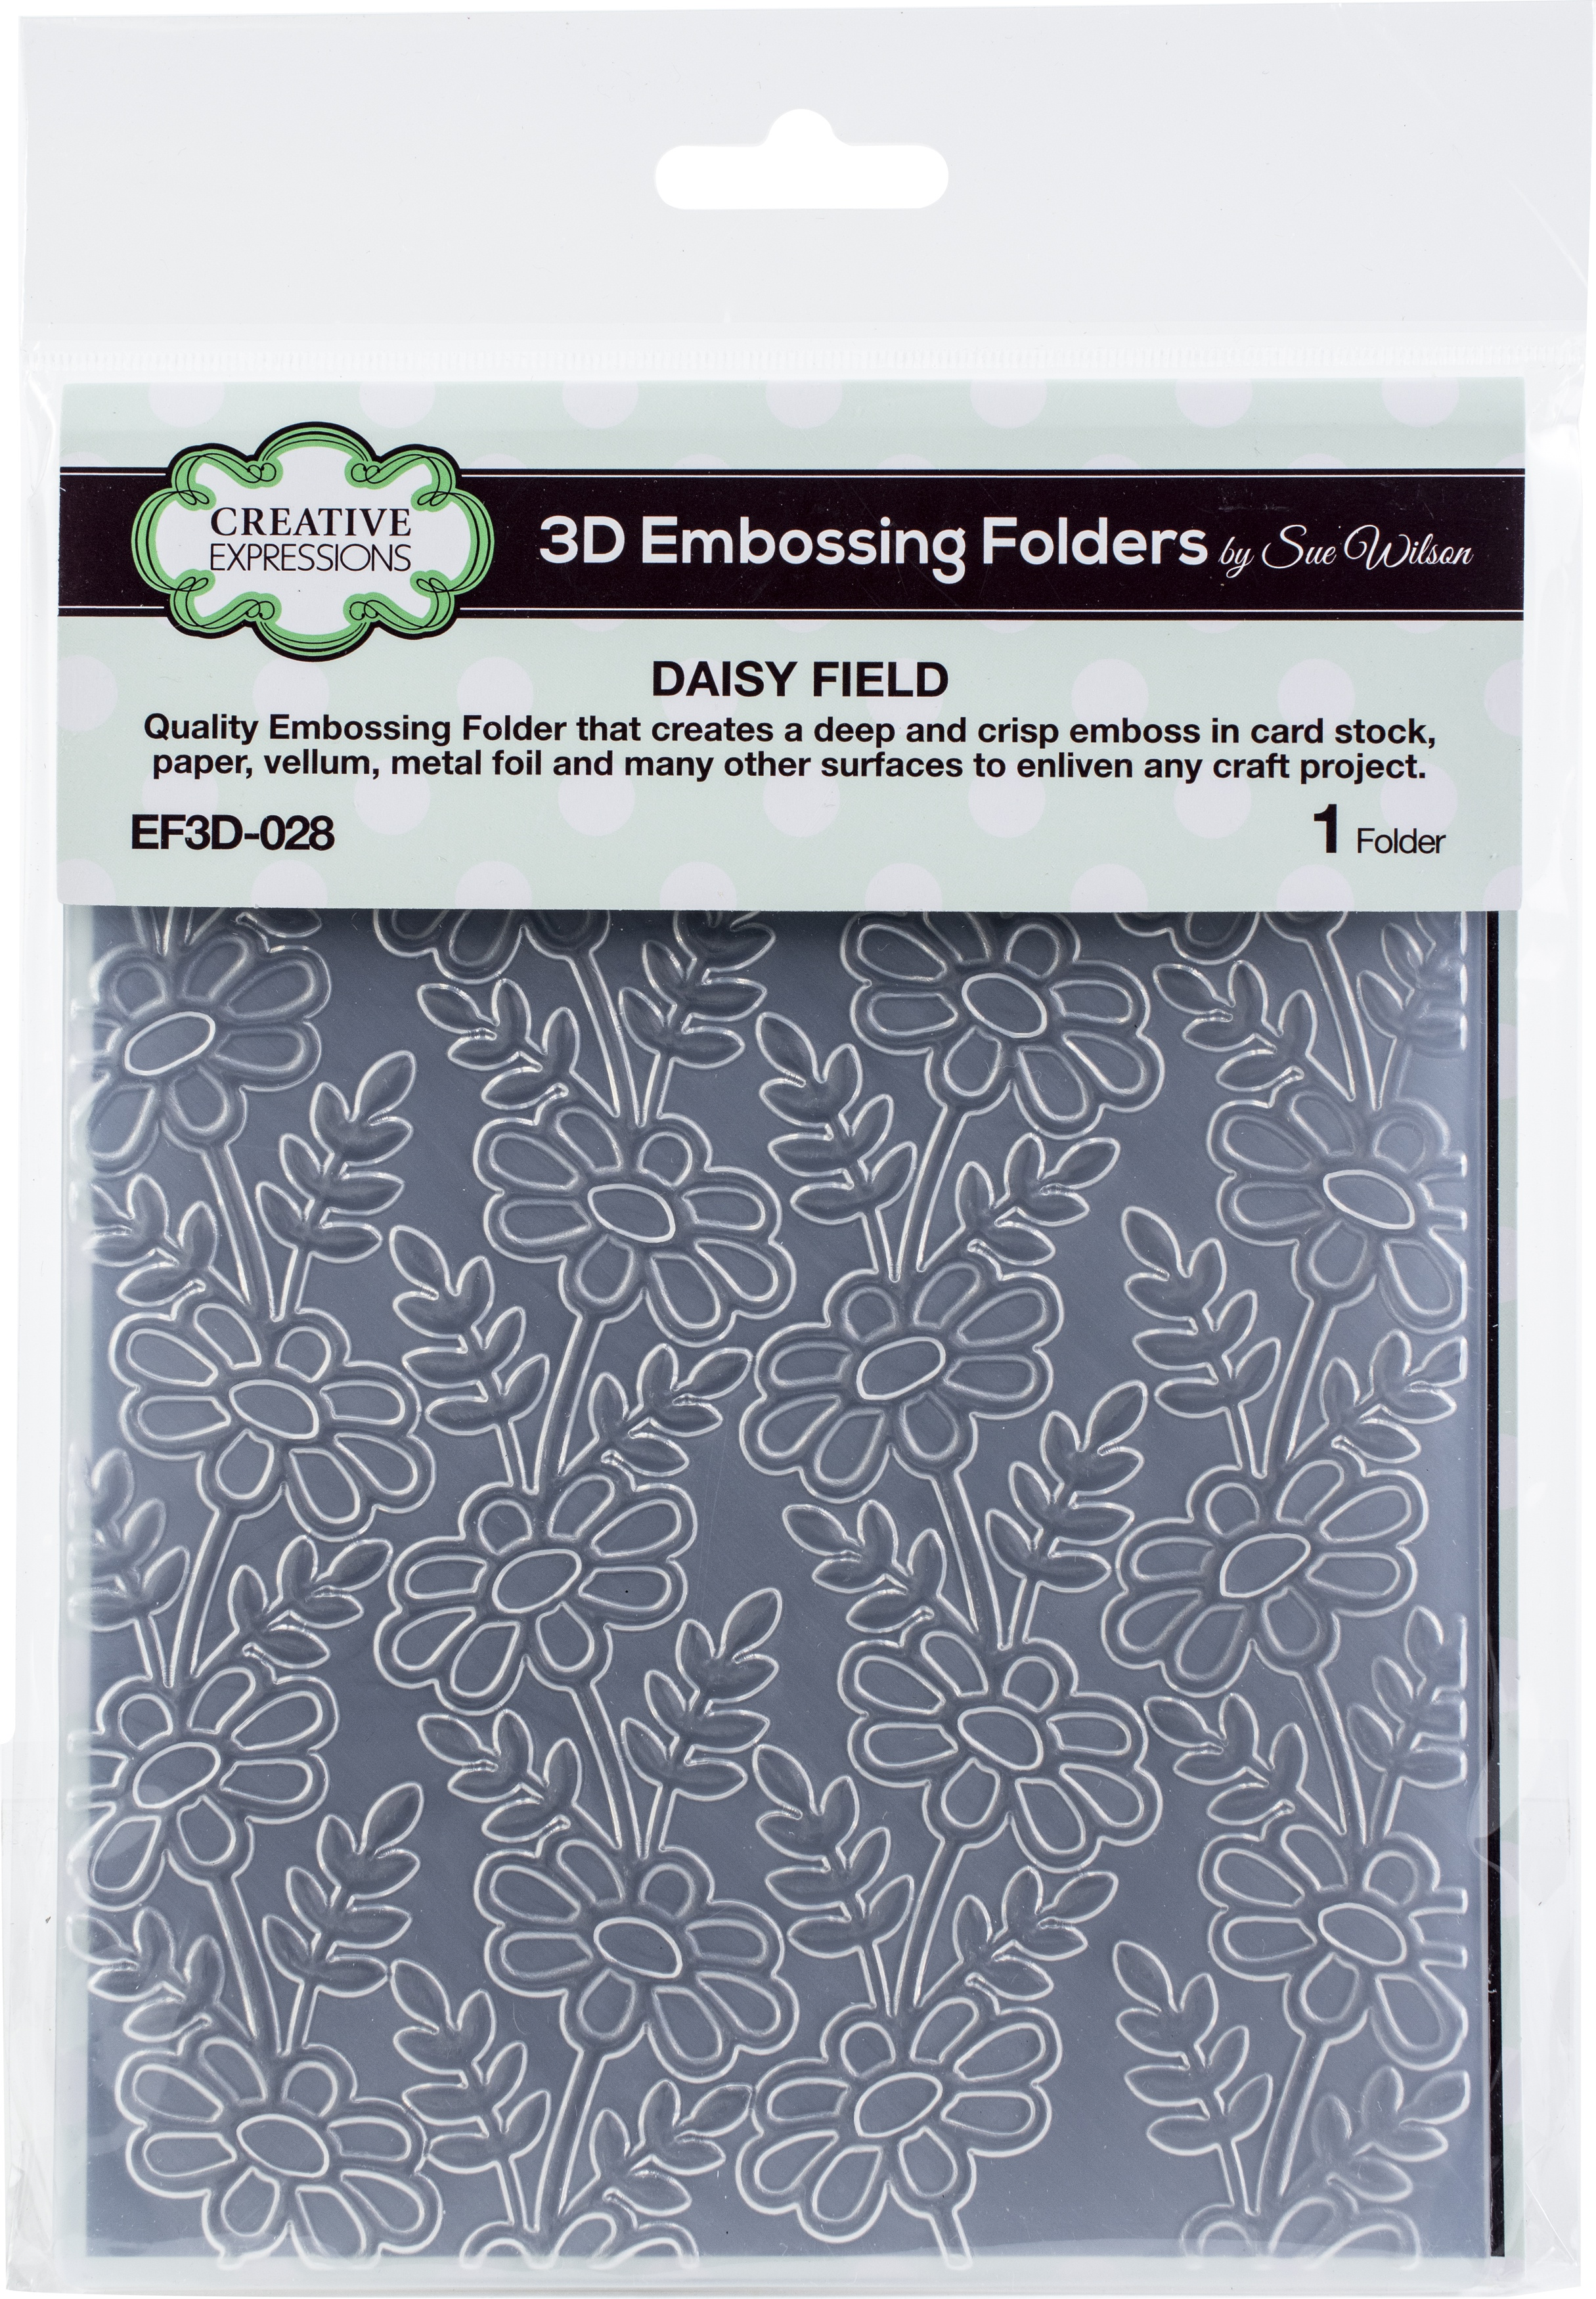 Creative Expressions 3D Embossing Folder 5.75X7.5-Daisy Field